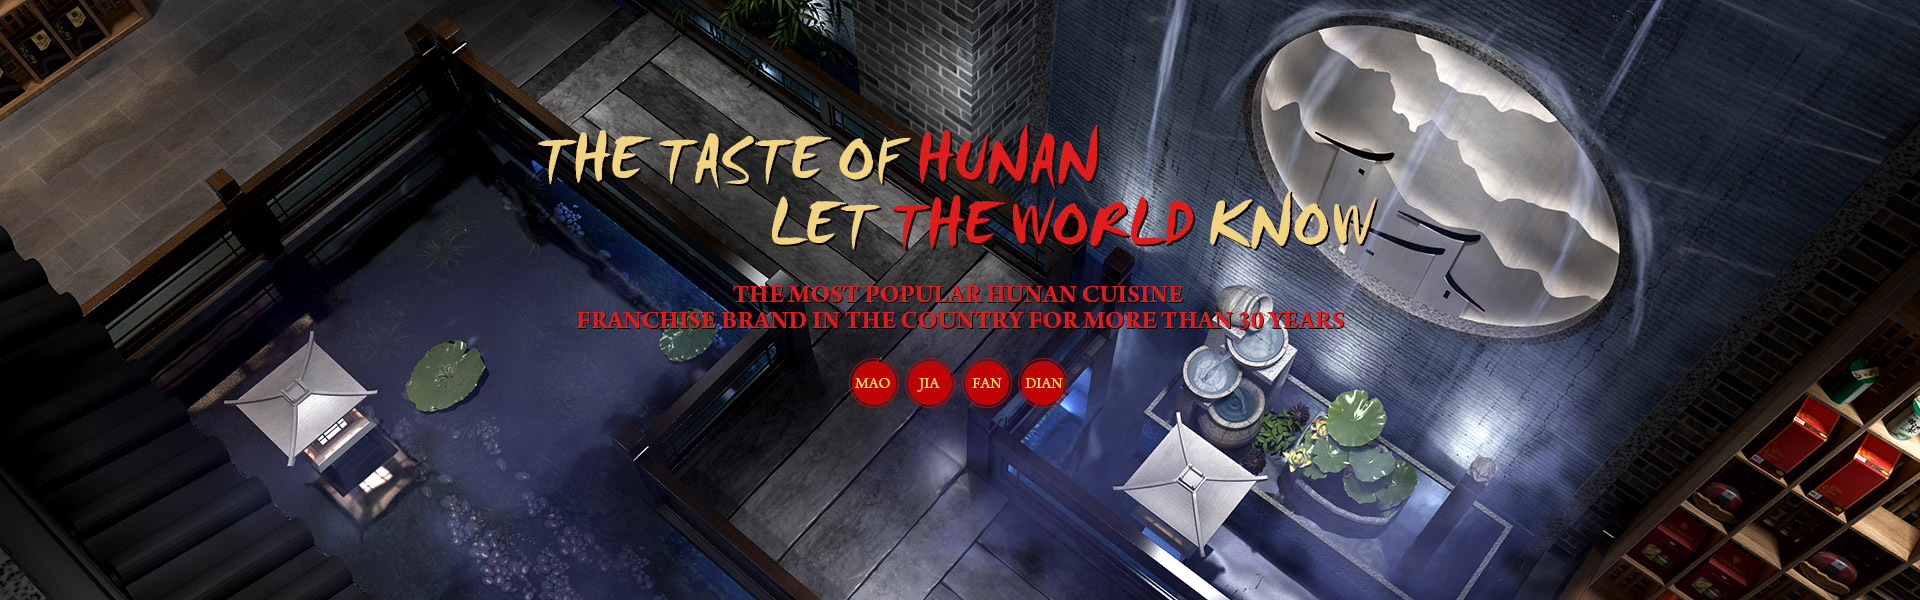 The taste of Hunan let the world know